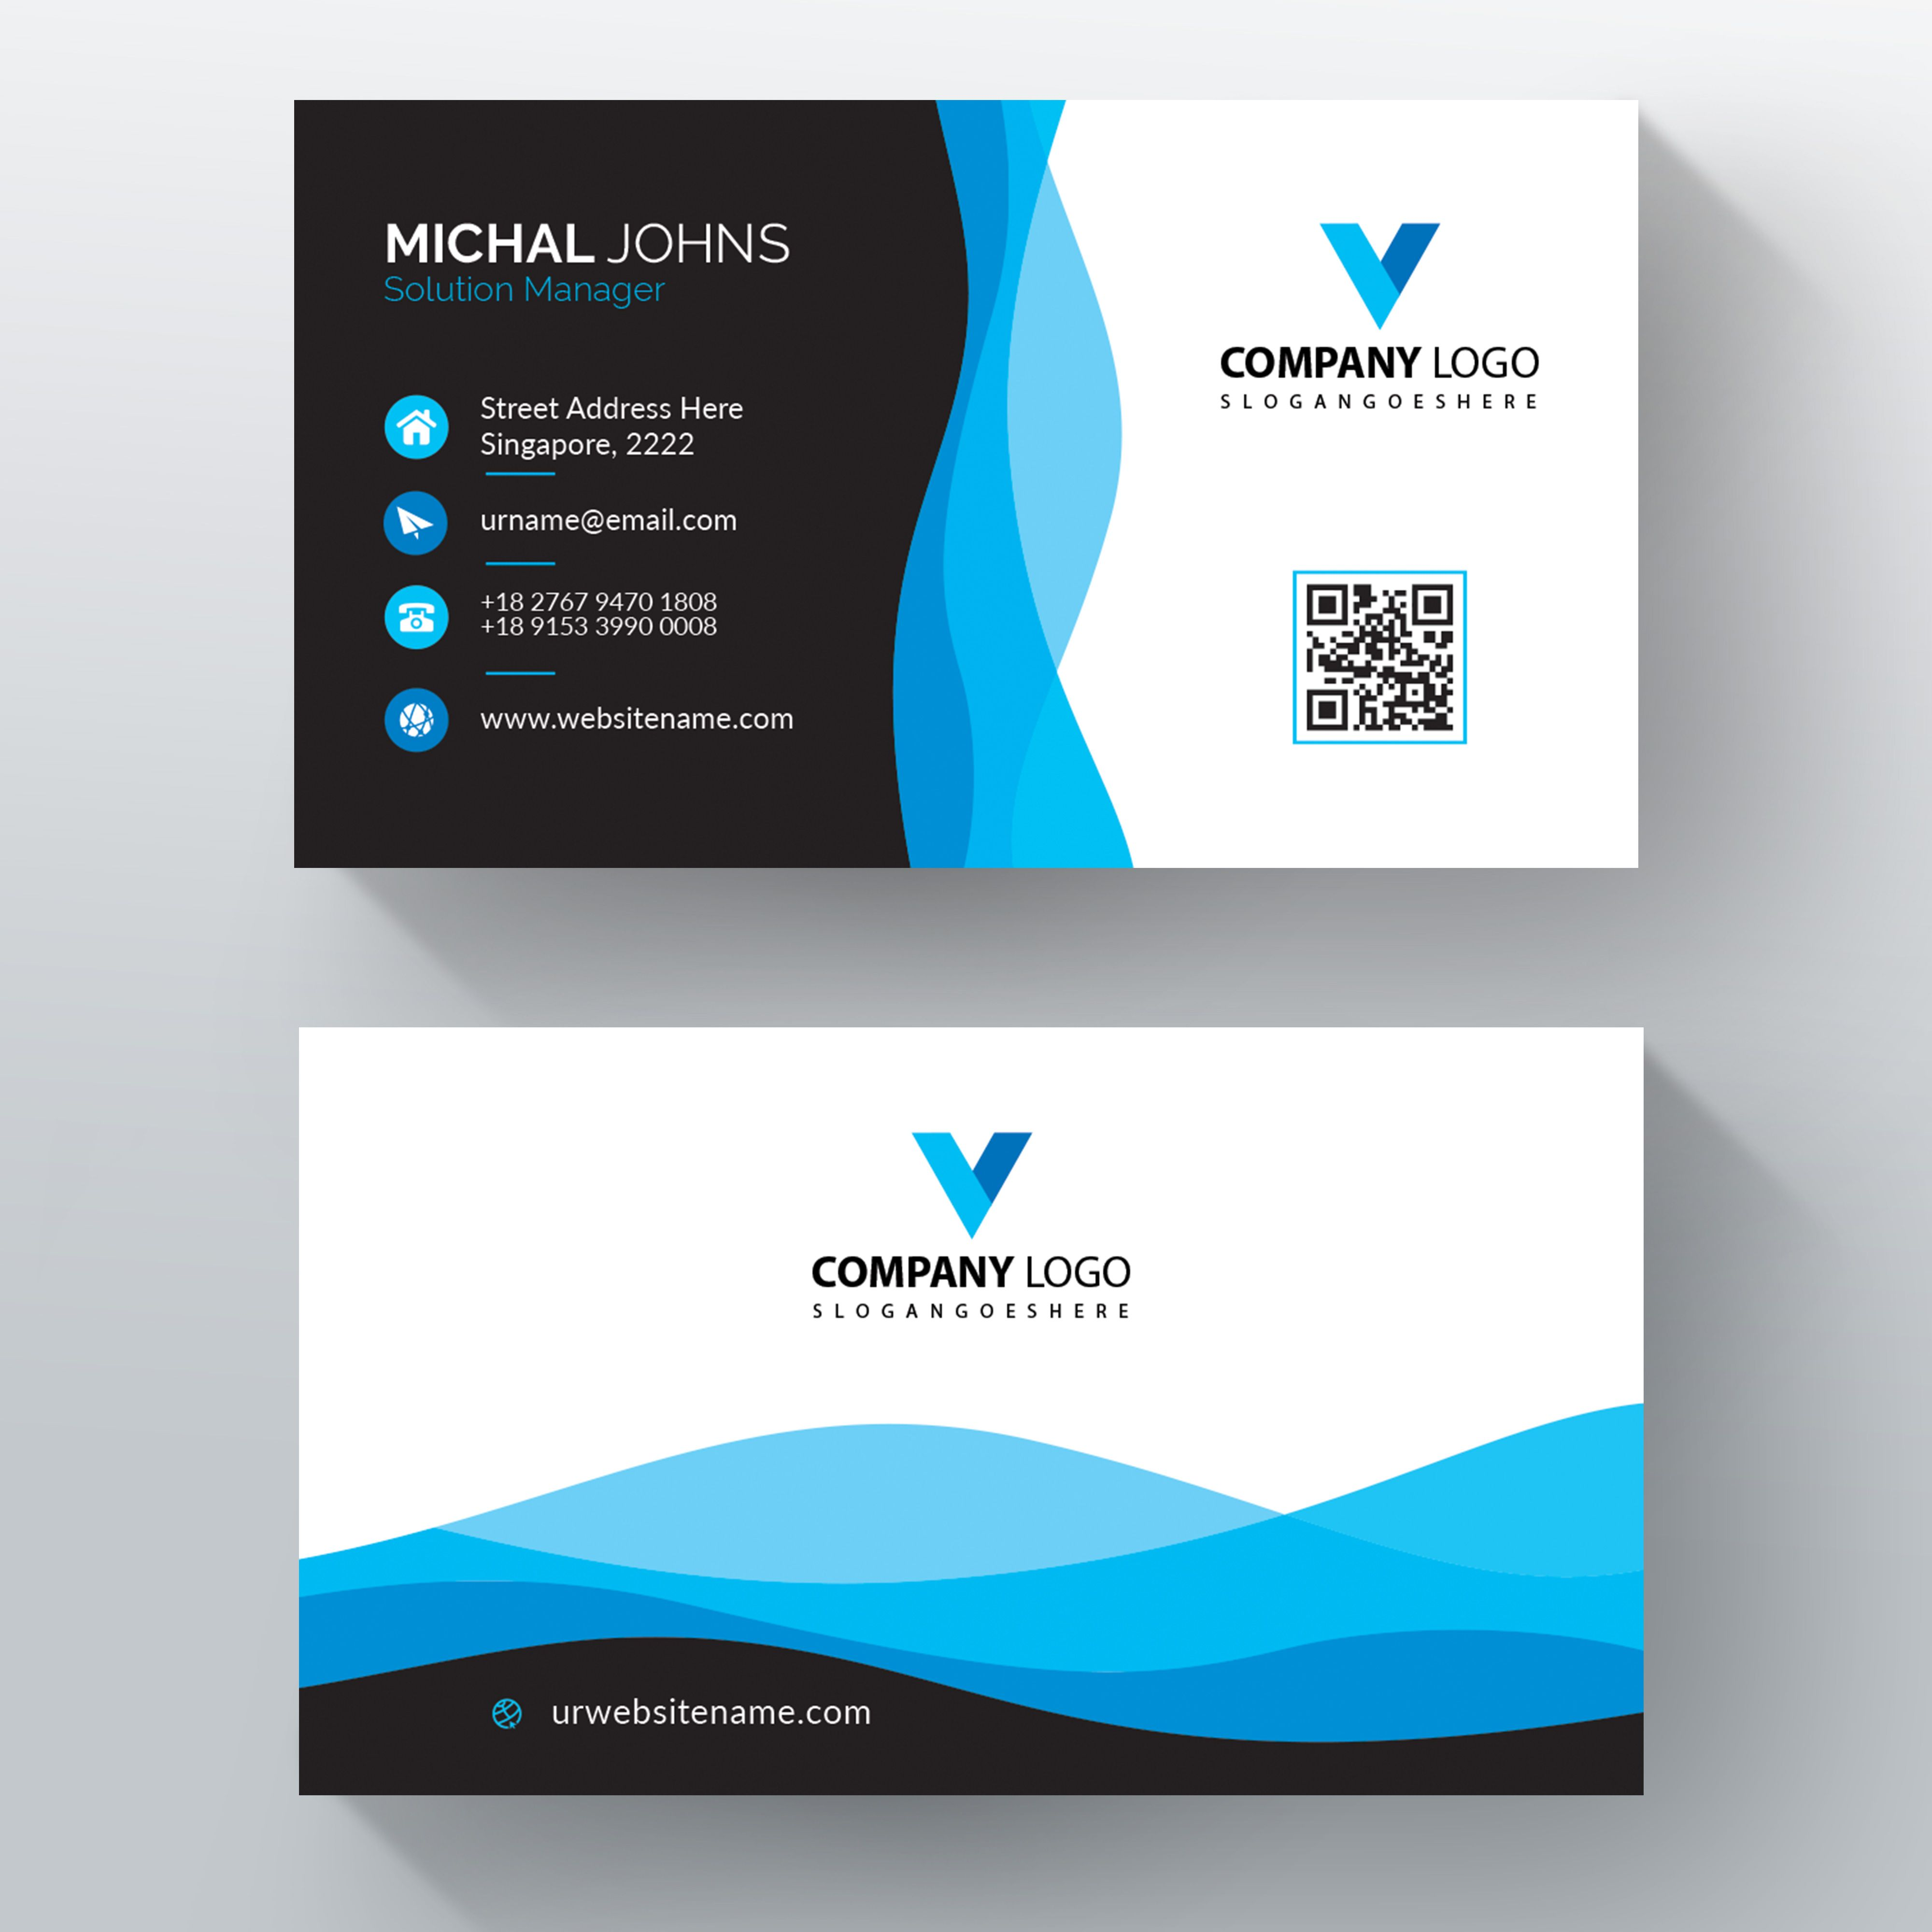 Template For Business Cards Free from i.pinimg.com